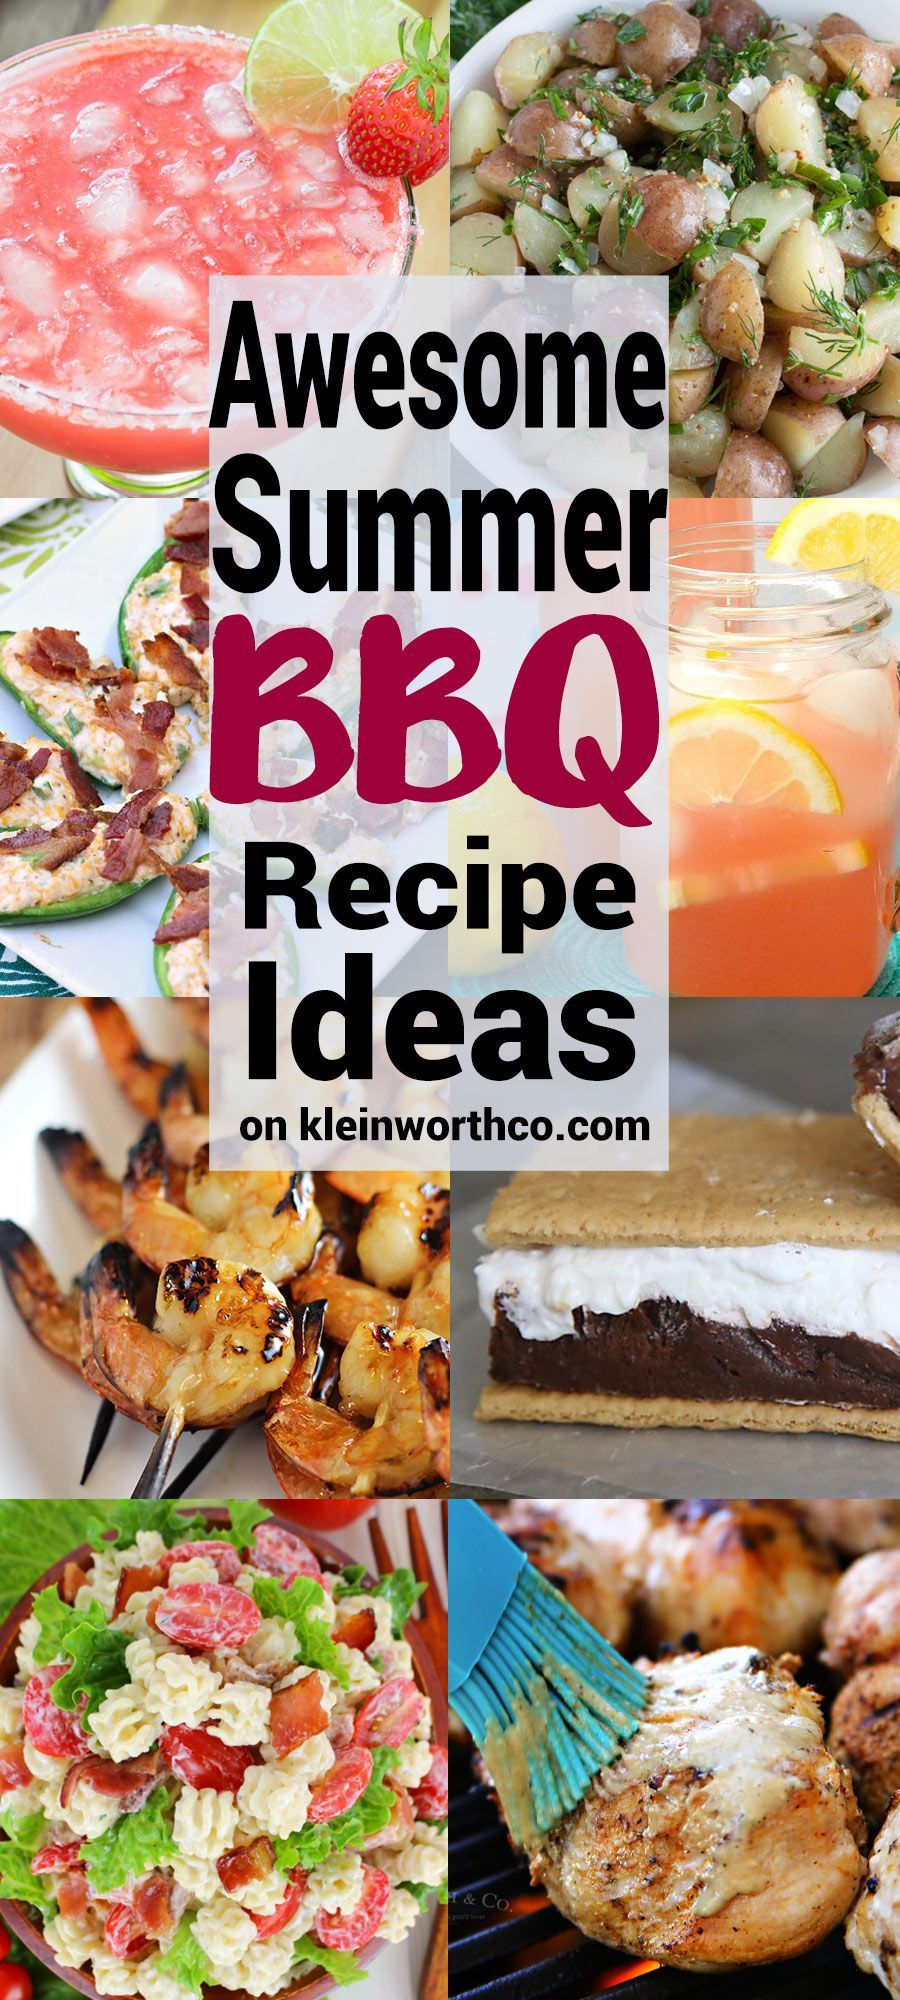 Awesome Summer Bbq Recipe Ideas To Have A Delicious Grill Out These Are The Must Have Recipes For Your Next Bbq Best Summer Bbq Recipes Bbq Recipes Bbq Menu